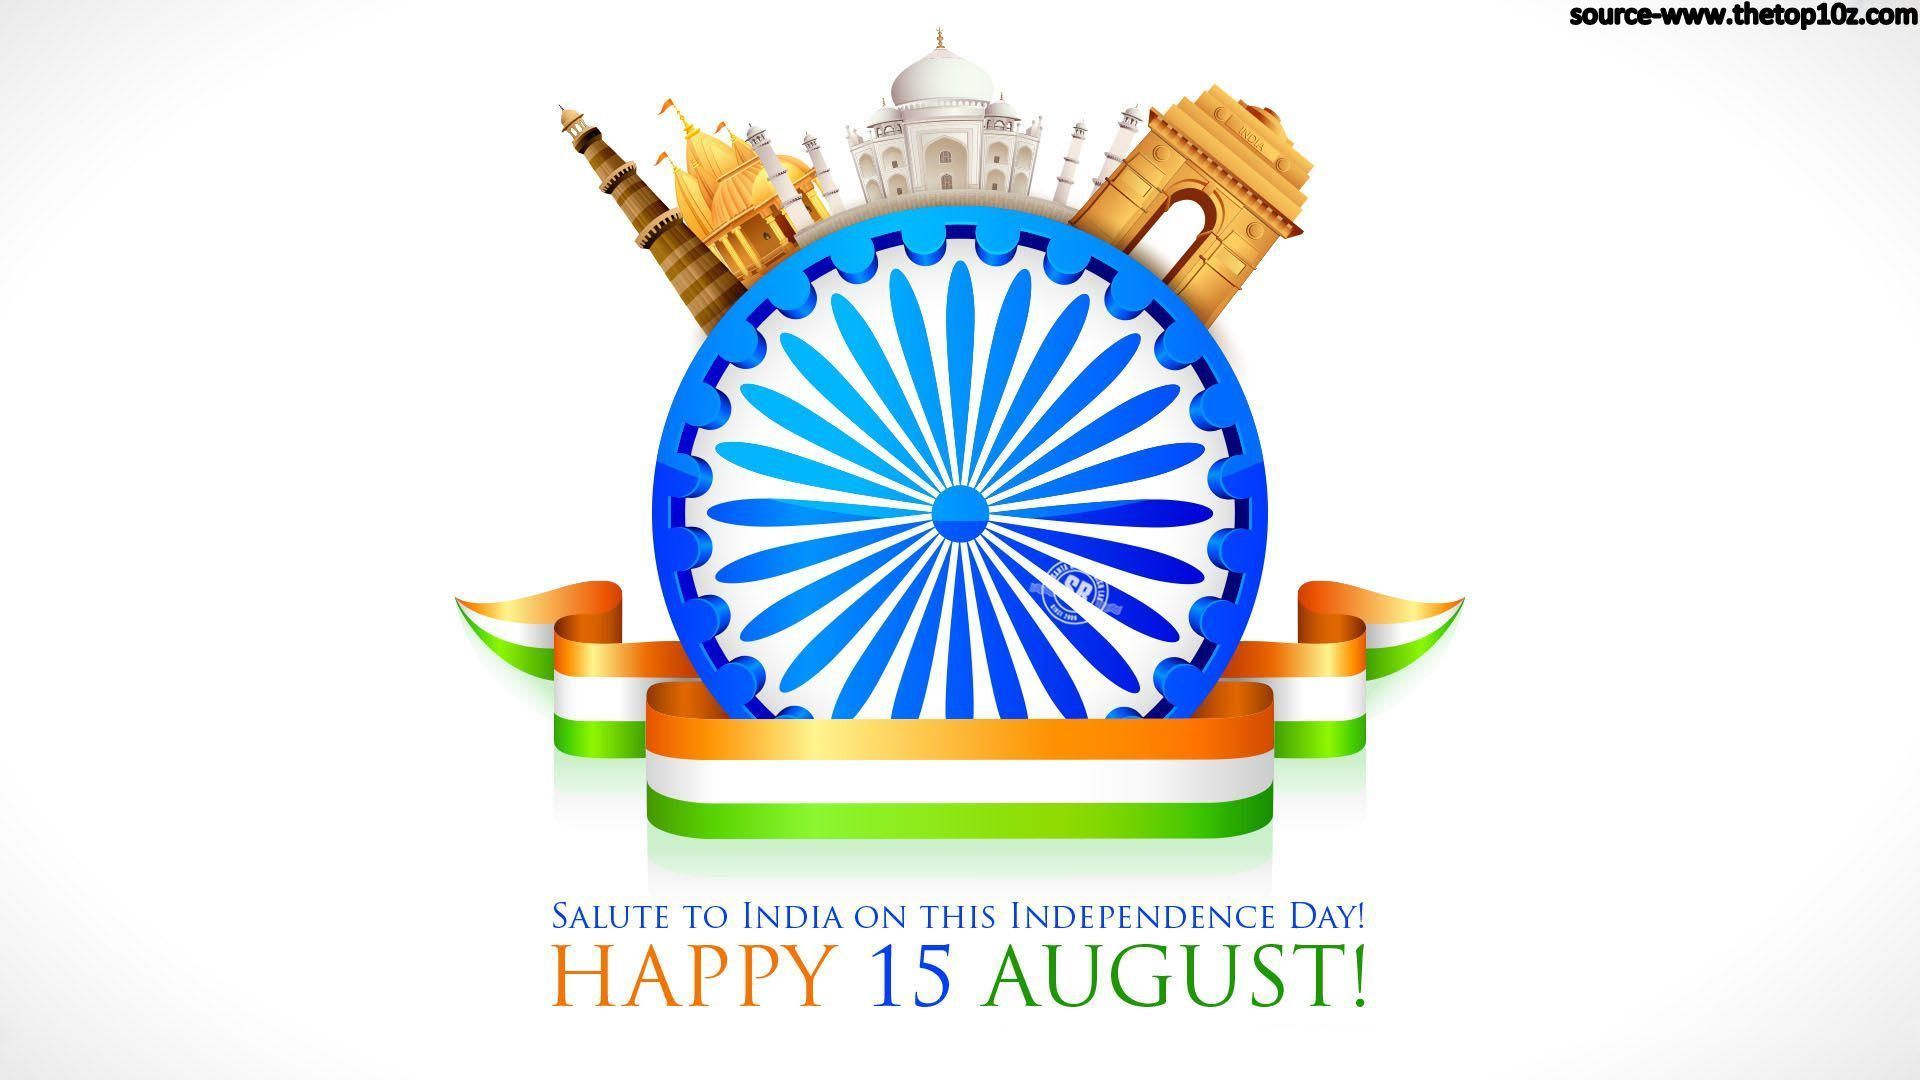 Pin On Independence Day Images Happy republic day wishes in tamil